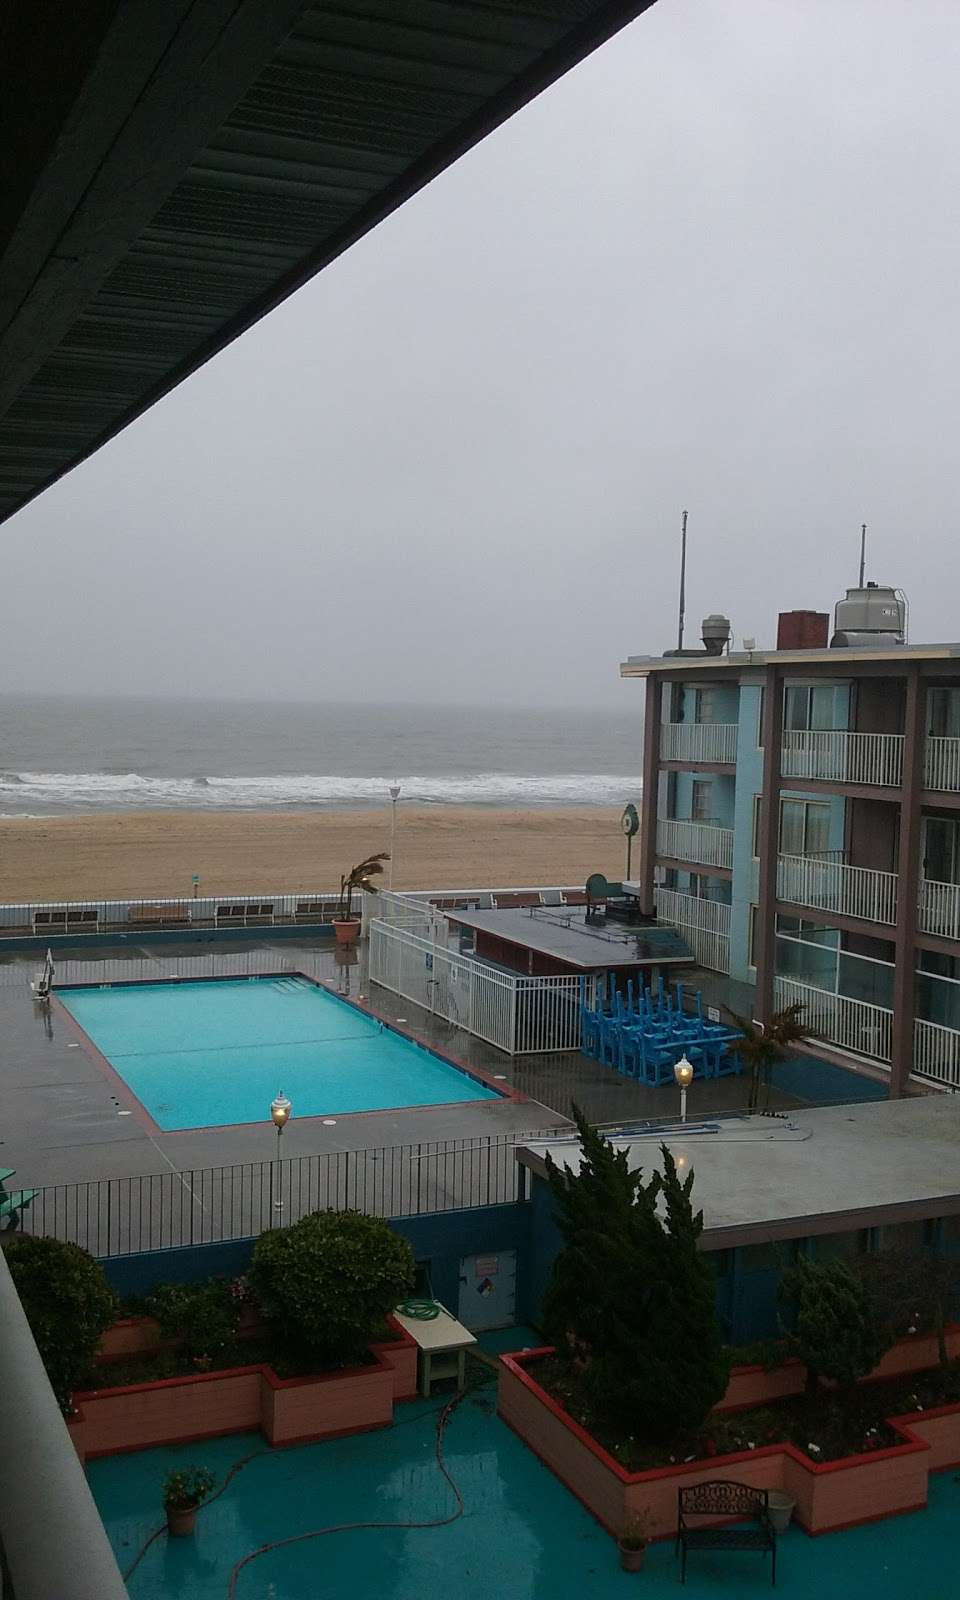 Flagship Oceanfront Hotel - lodging  | Photo 3 of 10 | Address: 2600 N Baltimore Ave, Ocean City, MD 21842, USA | Phone: (800) 837-3585